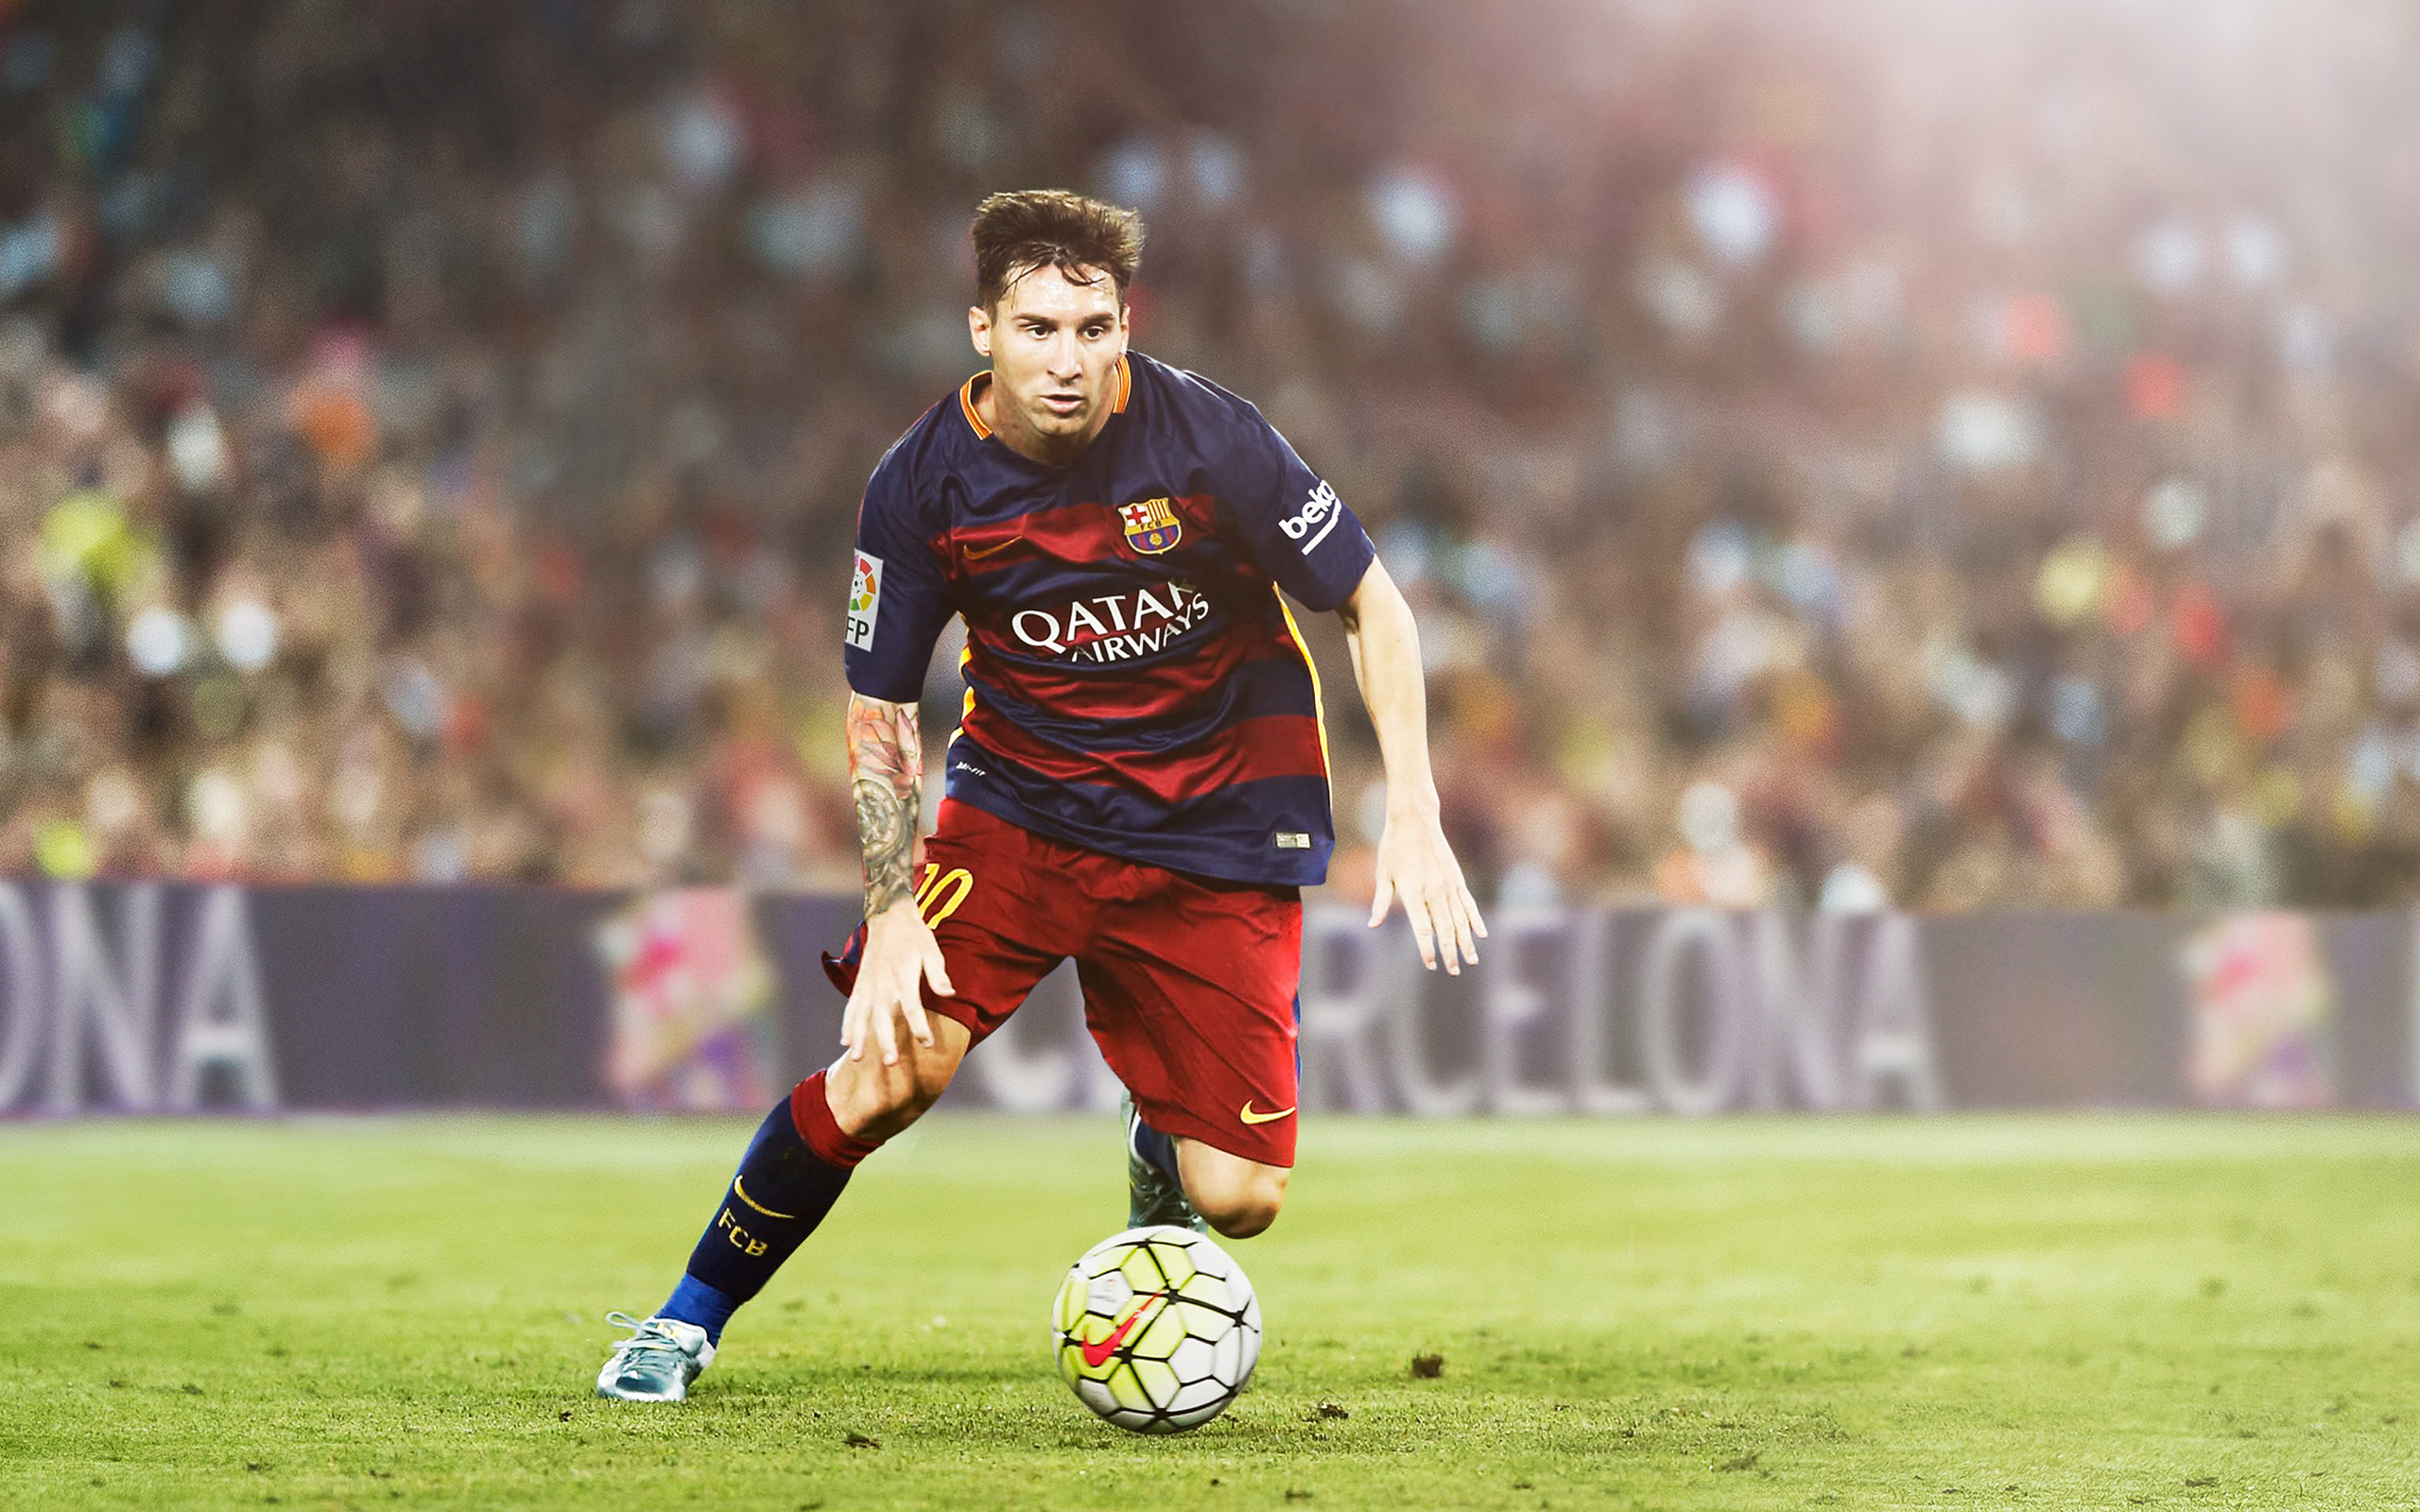 Lionel Messi Fc Barcelona Hd Wallpapers Hd Wallpapers